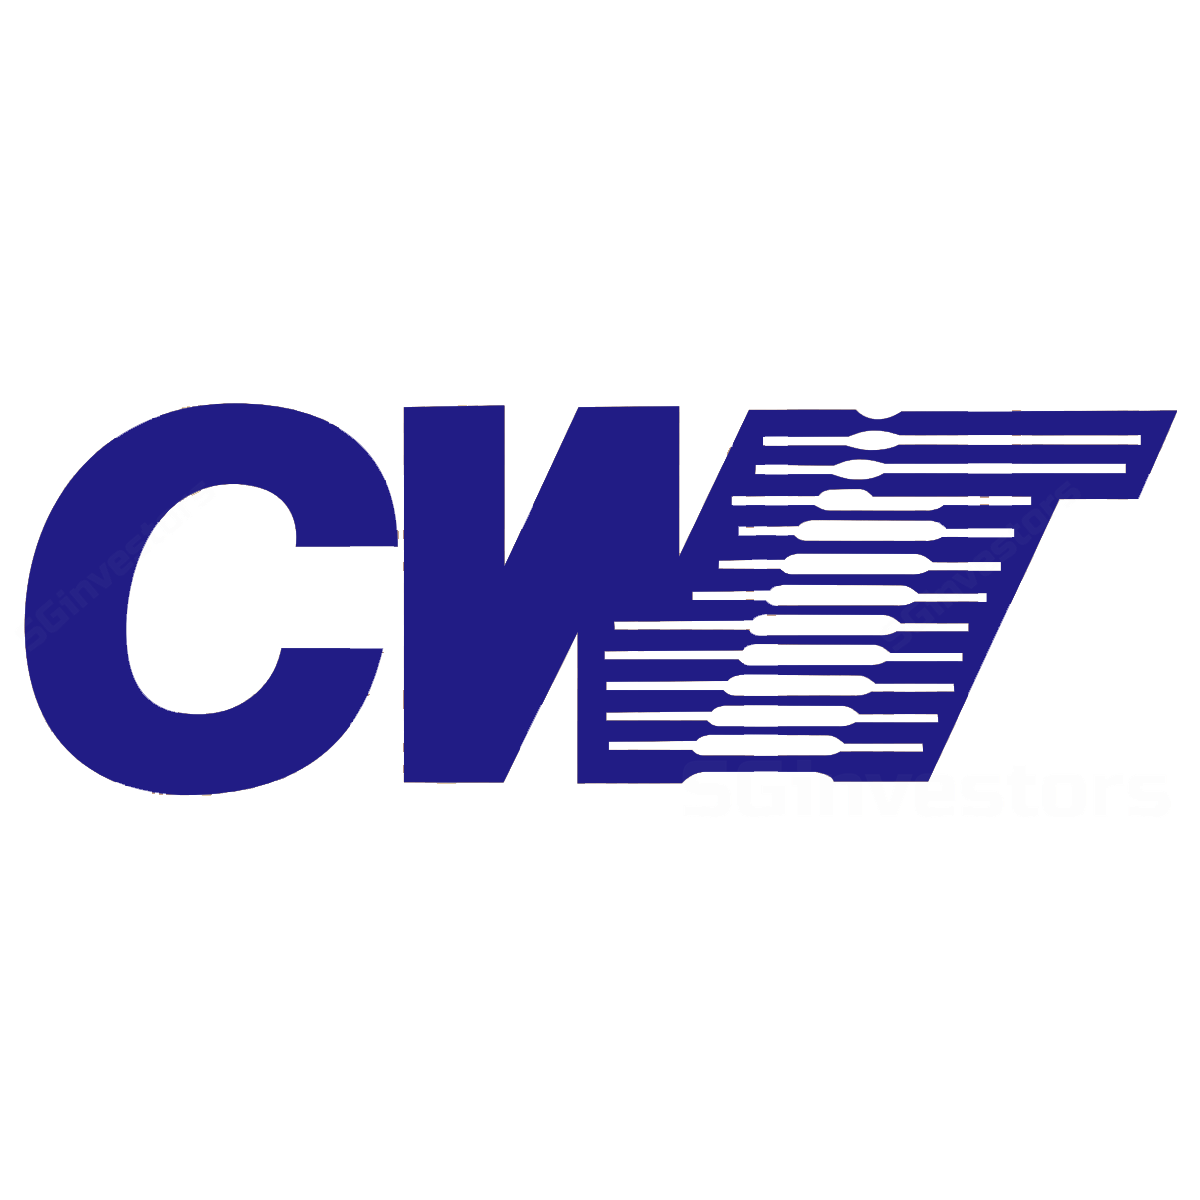 CWT Limited - OCBC Investment 2017-09-08: HNA Announced Firm Intention To Make VGO For CWT